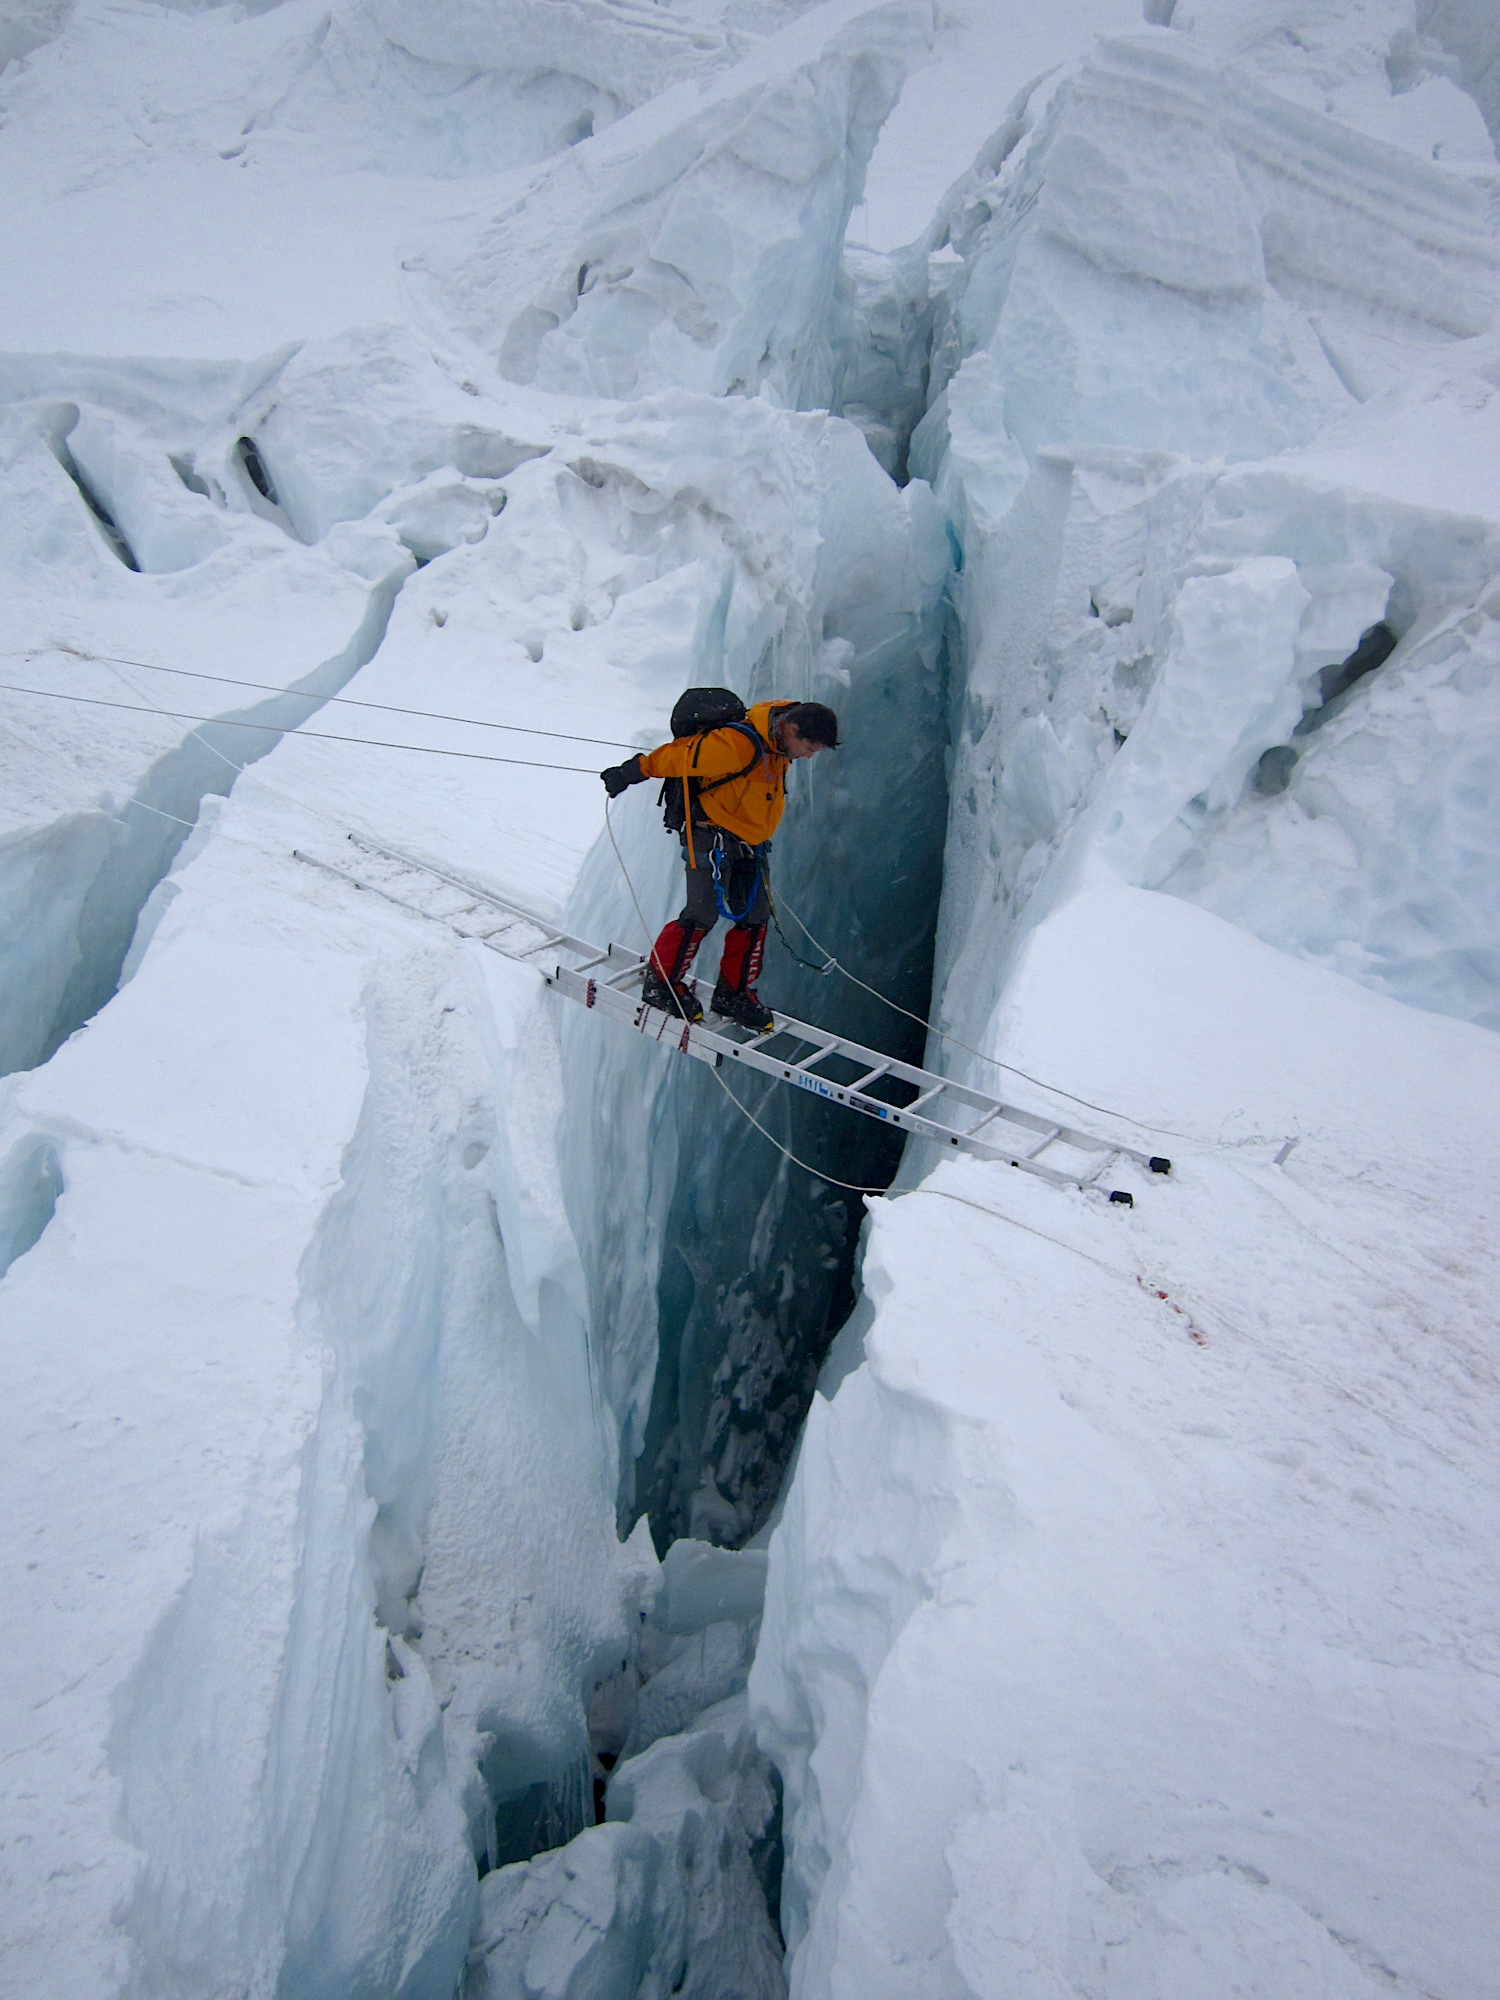 The author on a ladder in the Khumbu